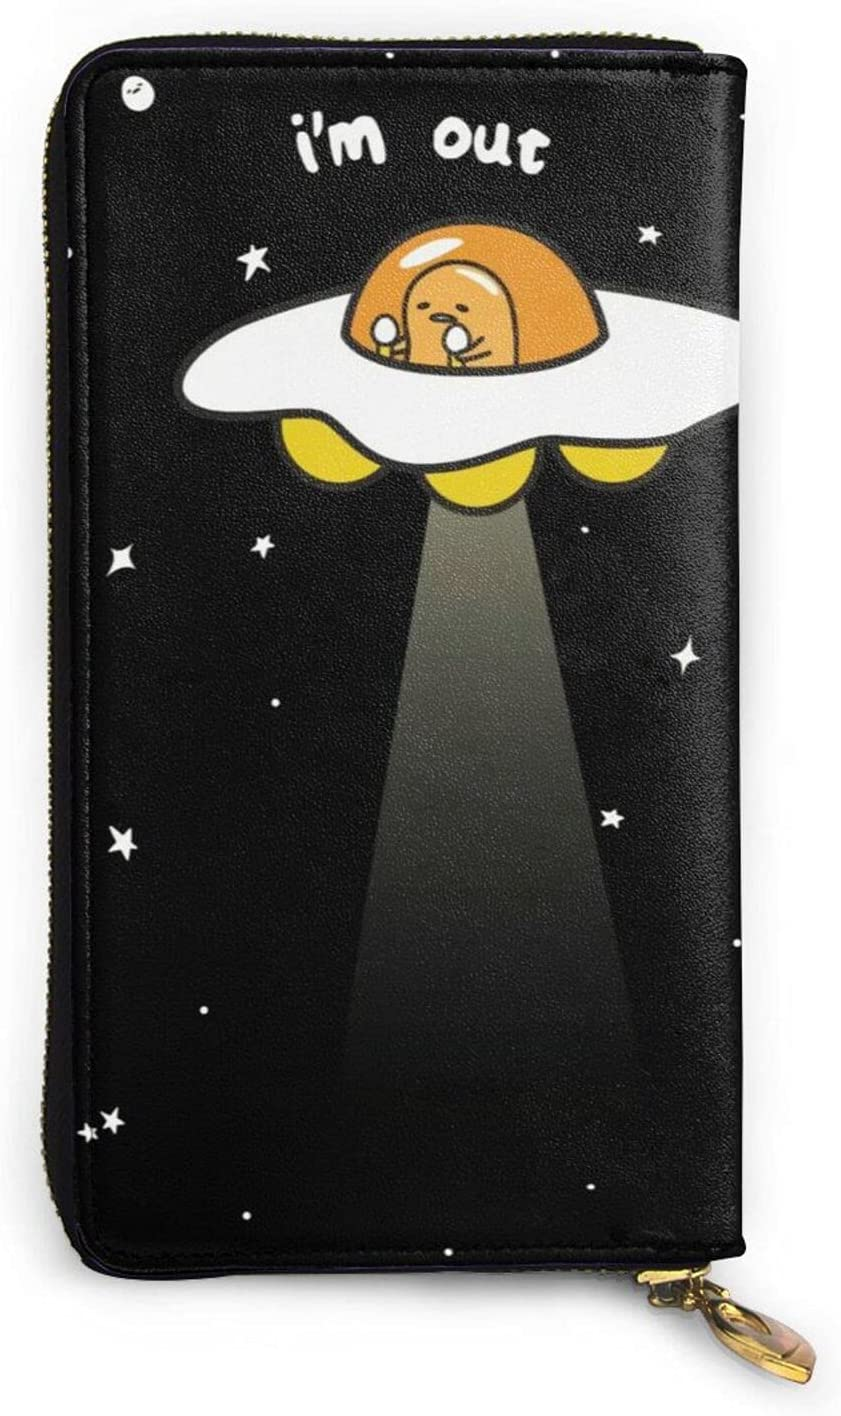 Bibbs Gudetama Leather Coin Purses Wallet 2021 model Popular Special price for a limited time Cr Zip